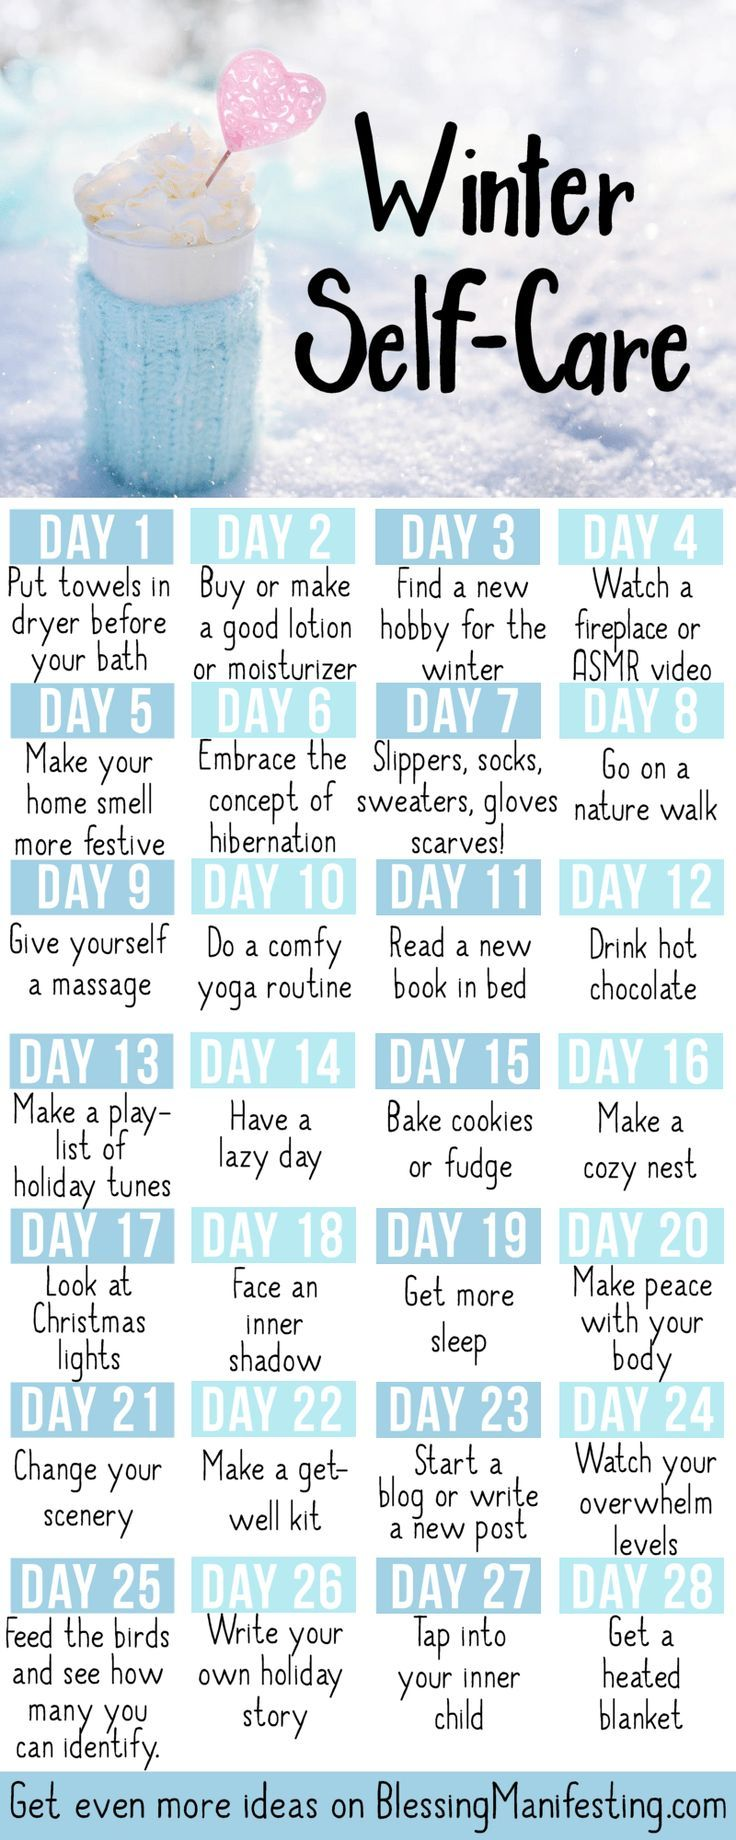 I love this, totally DL'd it my phone. *** Winter Self-care Calendar